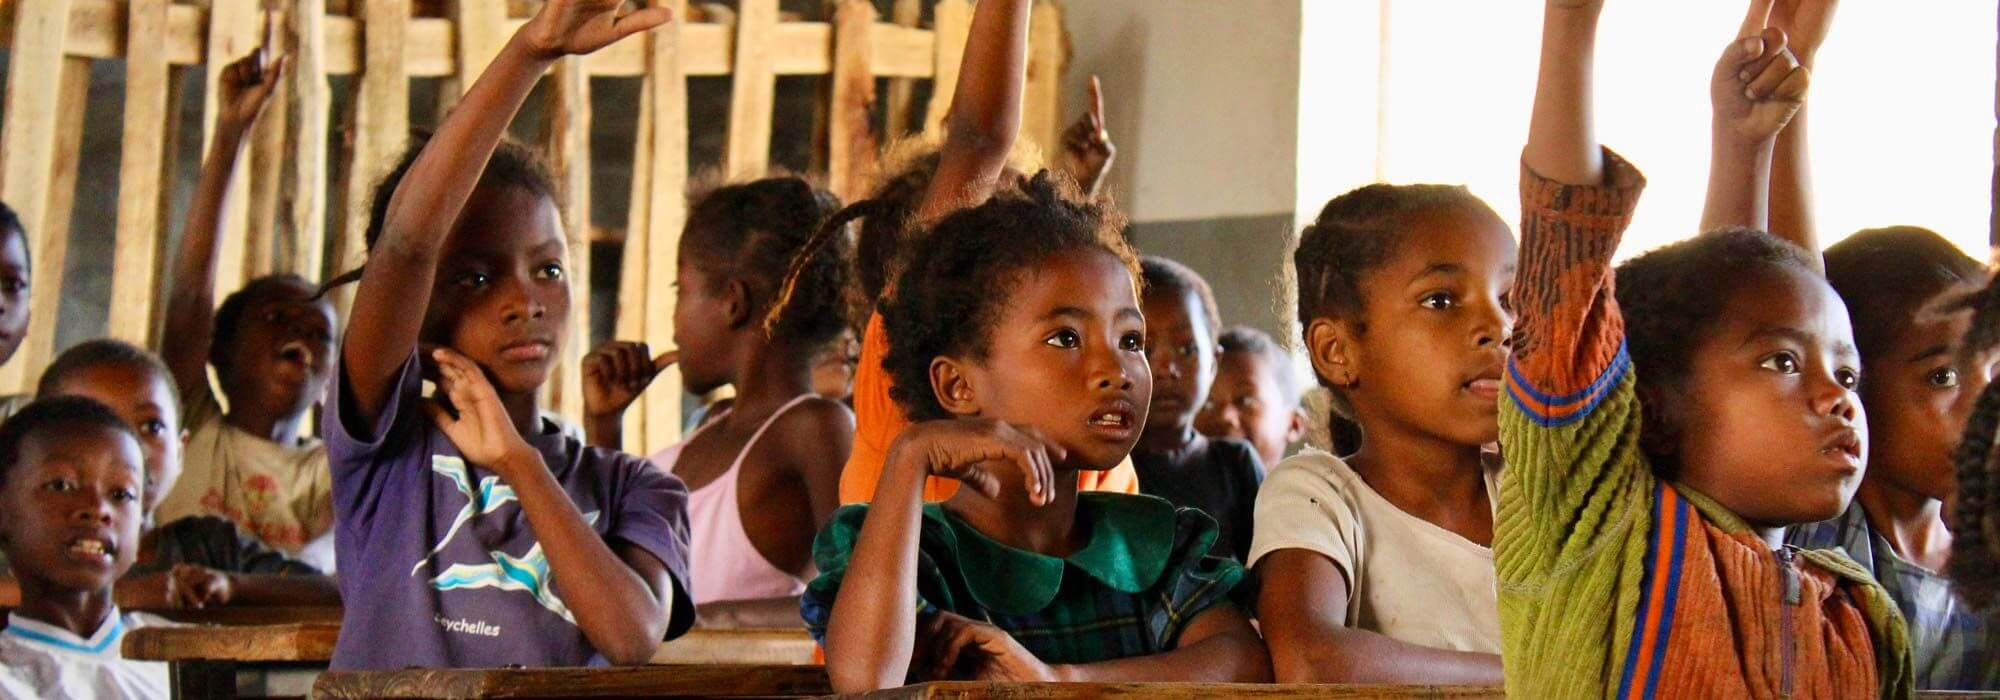 Malagasy children in school classroom with hands up